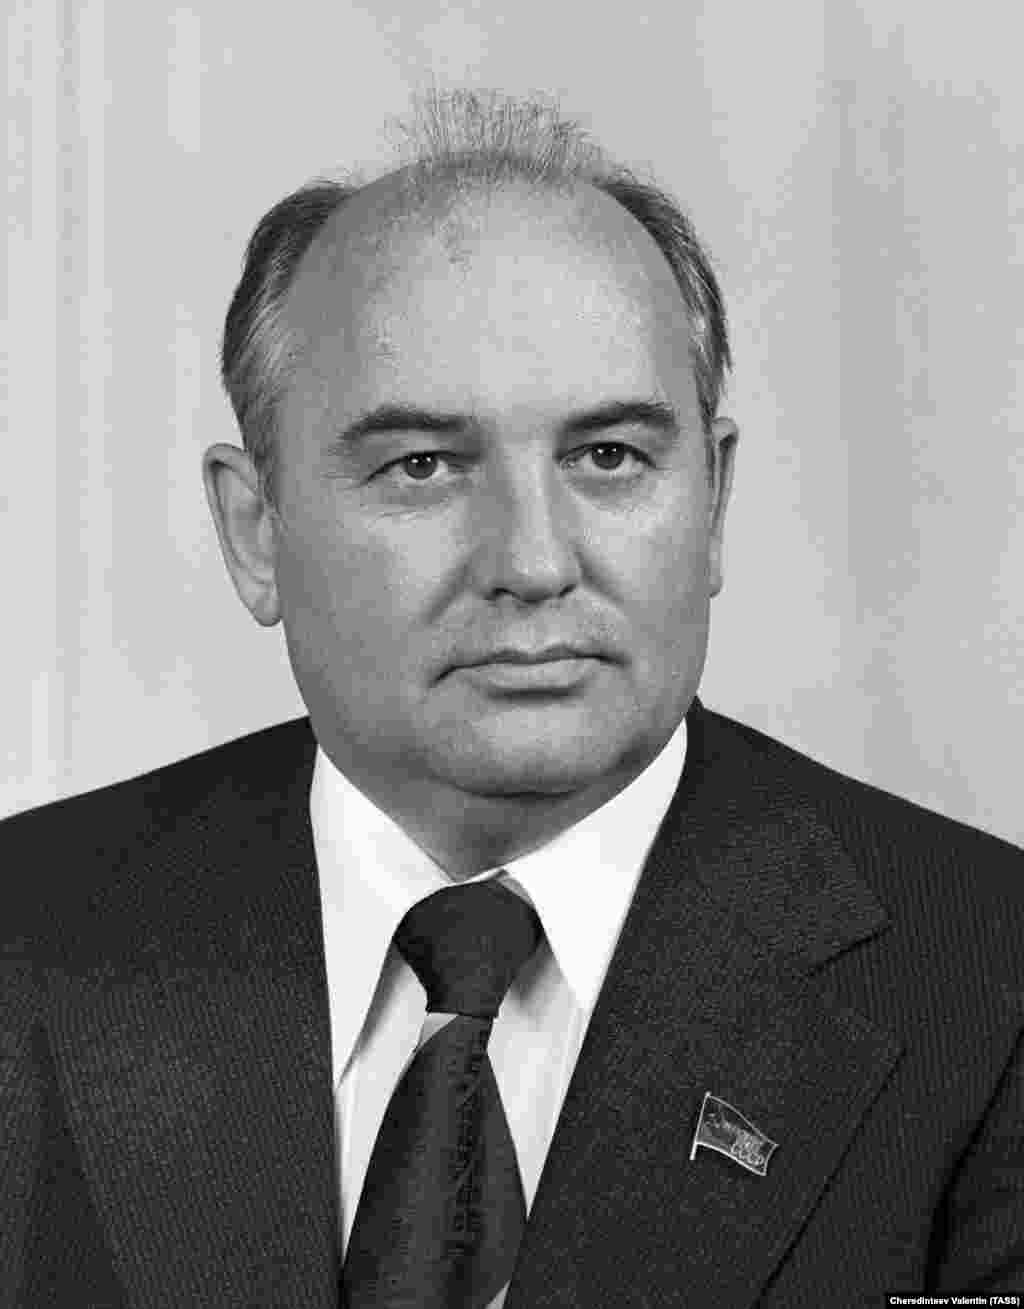 Most photographs from Gorbachev's early years are from angles that conceal his birthmark, but in official Kremlin releases, like this 1978 portrait of the future Soviet leader, some masterful airbushing was employed.